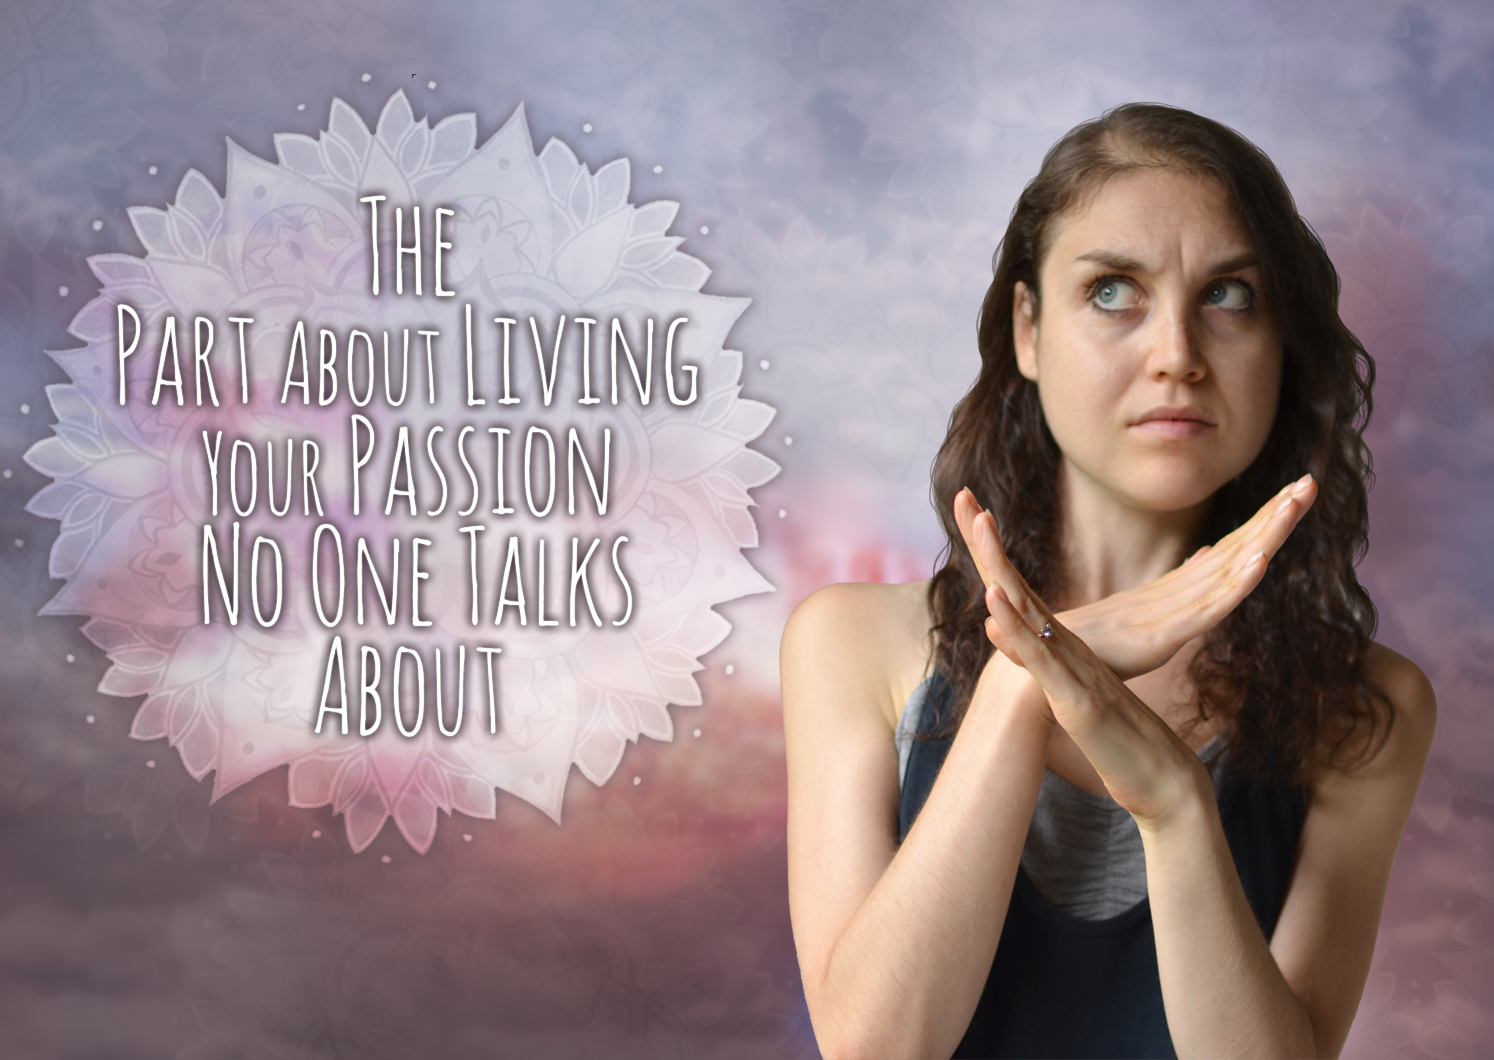 The Part Of Living Your Passion No One Talks About